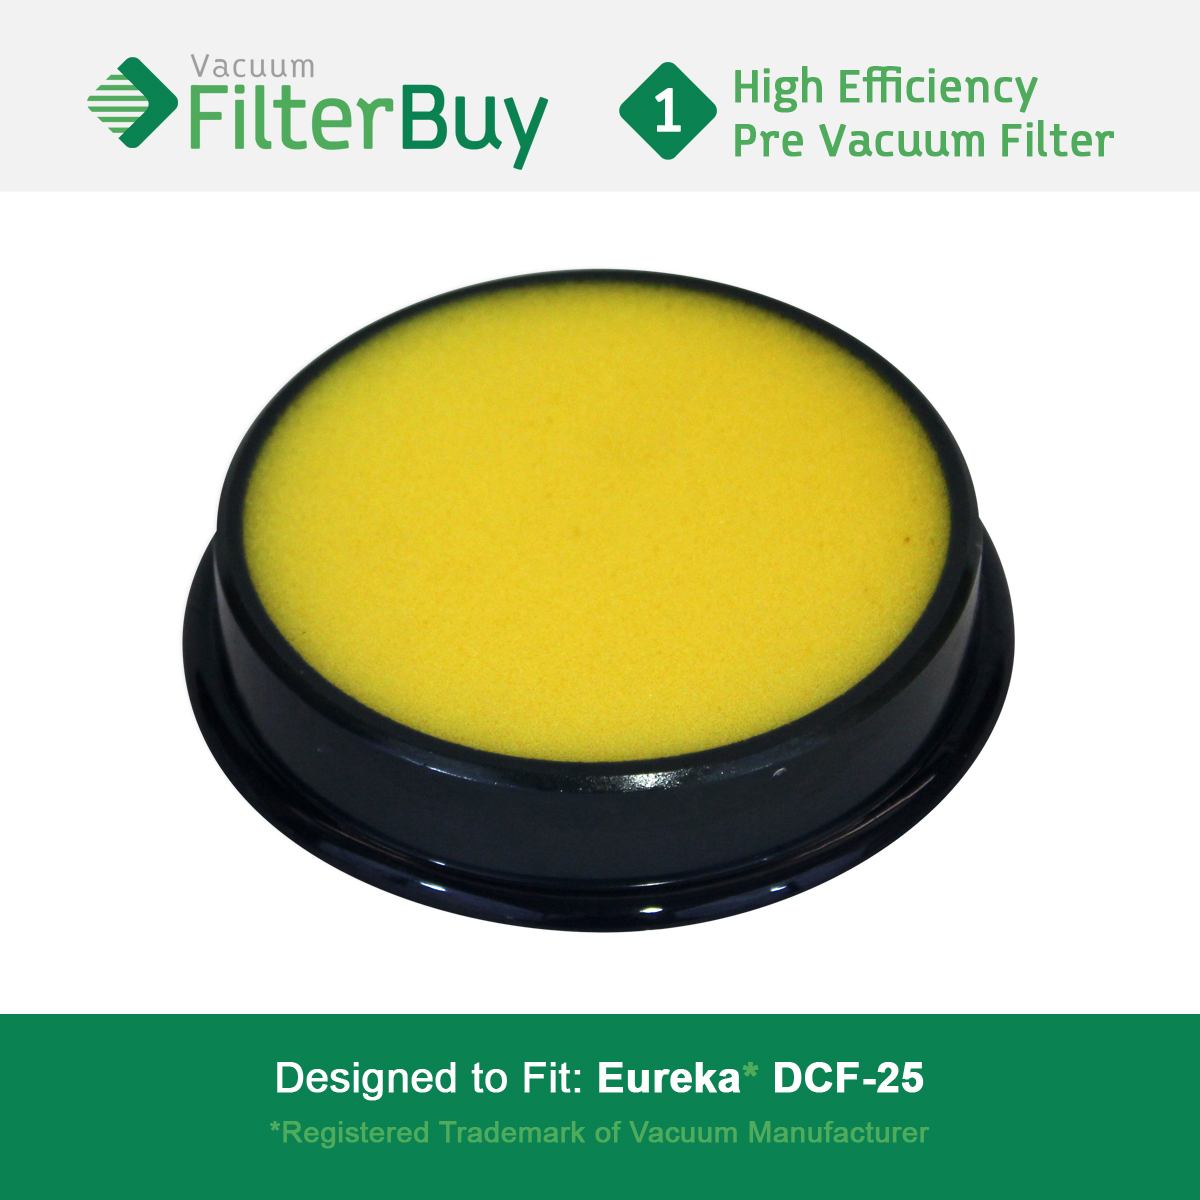 Eureka DCF25 (DCF-25) Washable & Reusable Filter, Eureka Part # 67600 & Electrolux Part # 82982.  Designed by FilterBuy to fit Eureka Airspeed, SuctionSeal & Endeavor NLS.